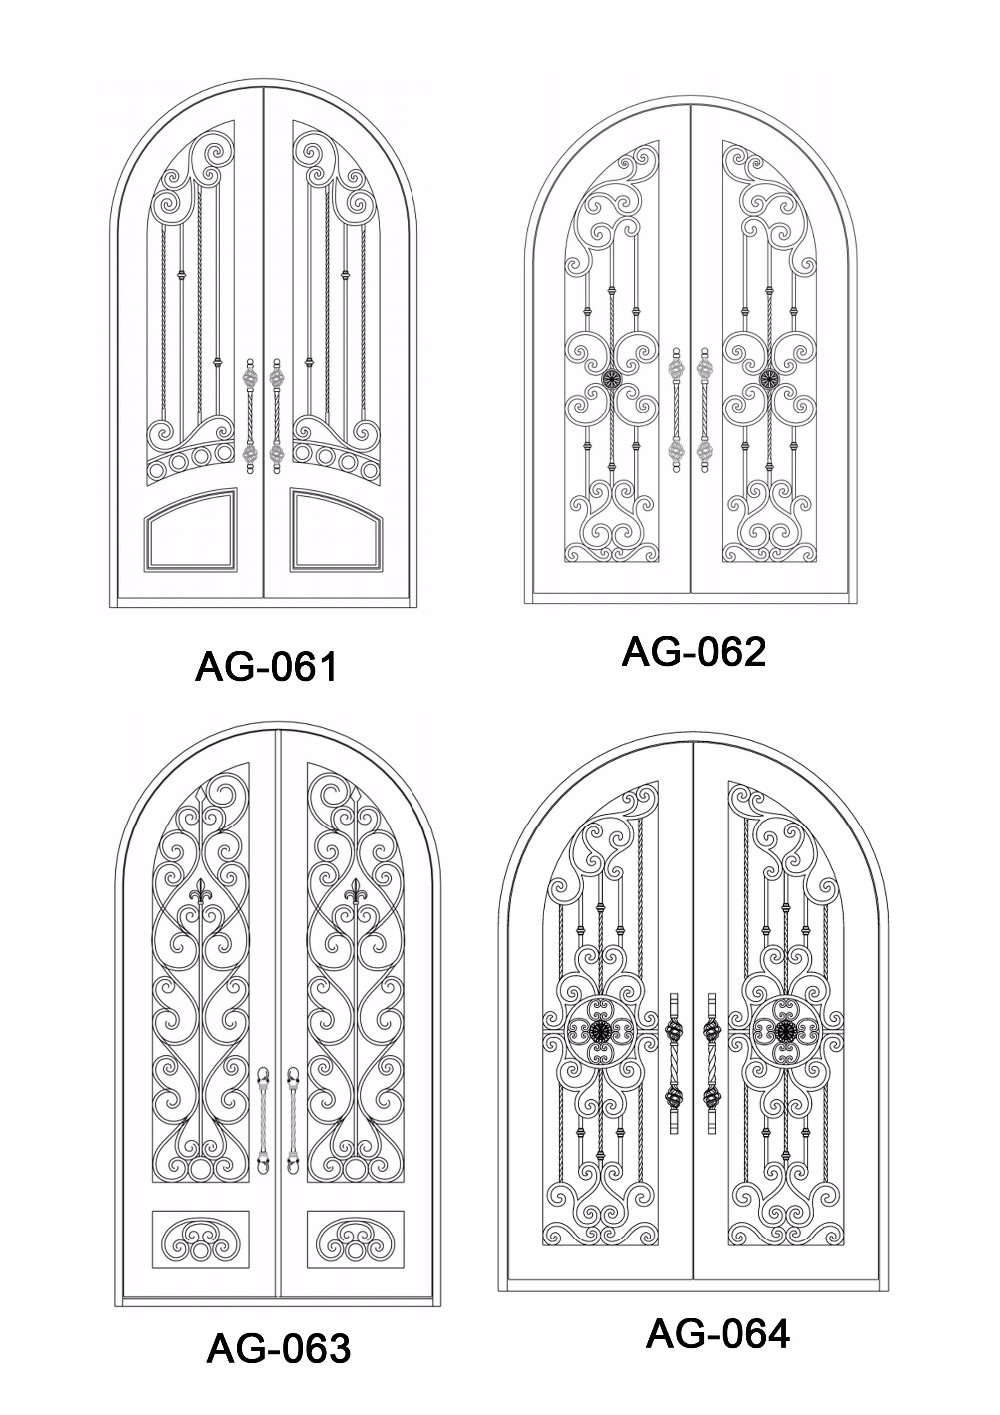 ZWxldmF0b3IgZG9vciBkaW1lbnNpb25z in addition Gemini Picture Windows And Geometric Shapes additionally Kawneer Top Offset Pivot Package additionally 214494 together with China Supplier Wrought Iron Entry Entrance 60458401298. on custom size entry doors